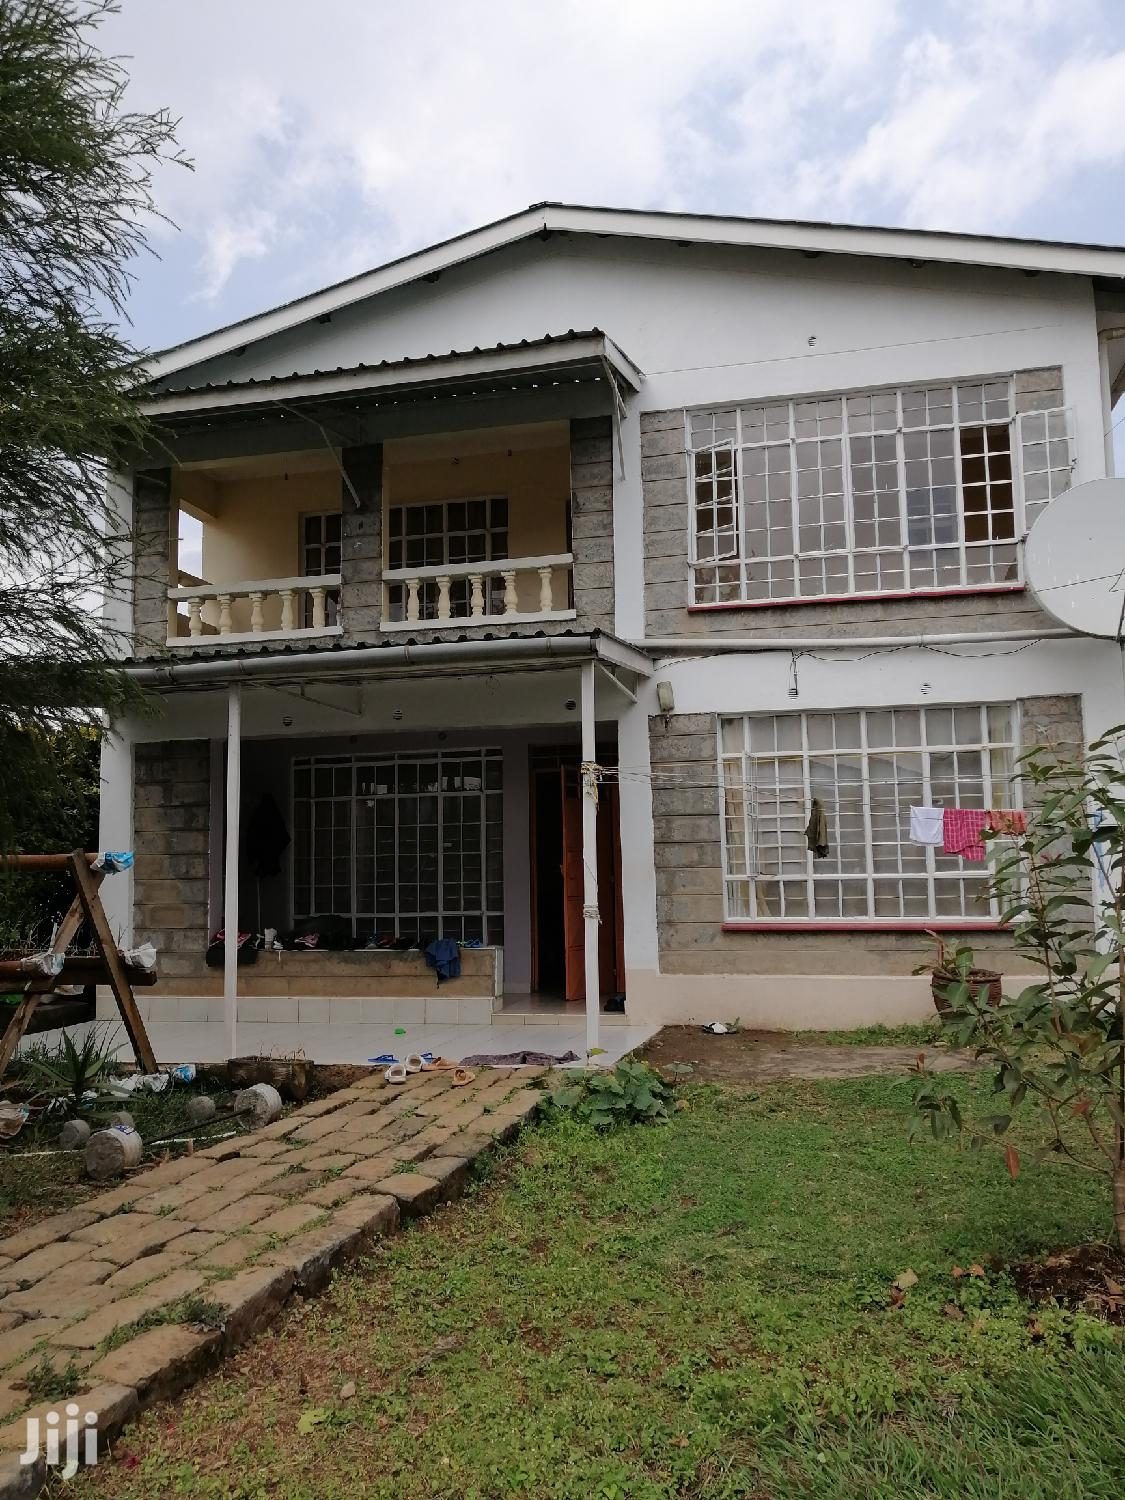 Used House For Sale.... 7bedroomed House | Houses & Apartments For Sale for sale in Nairobi Central, Nairobi, Kenya